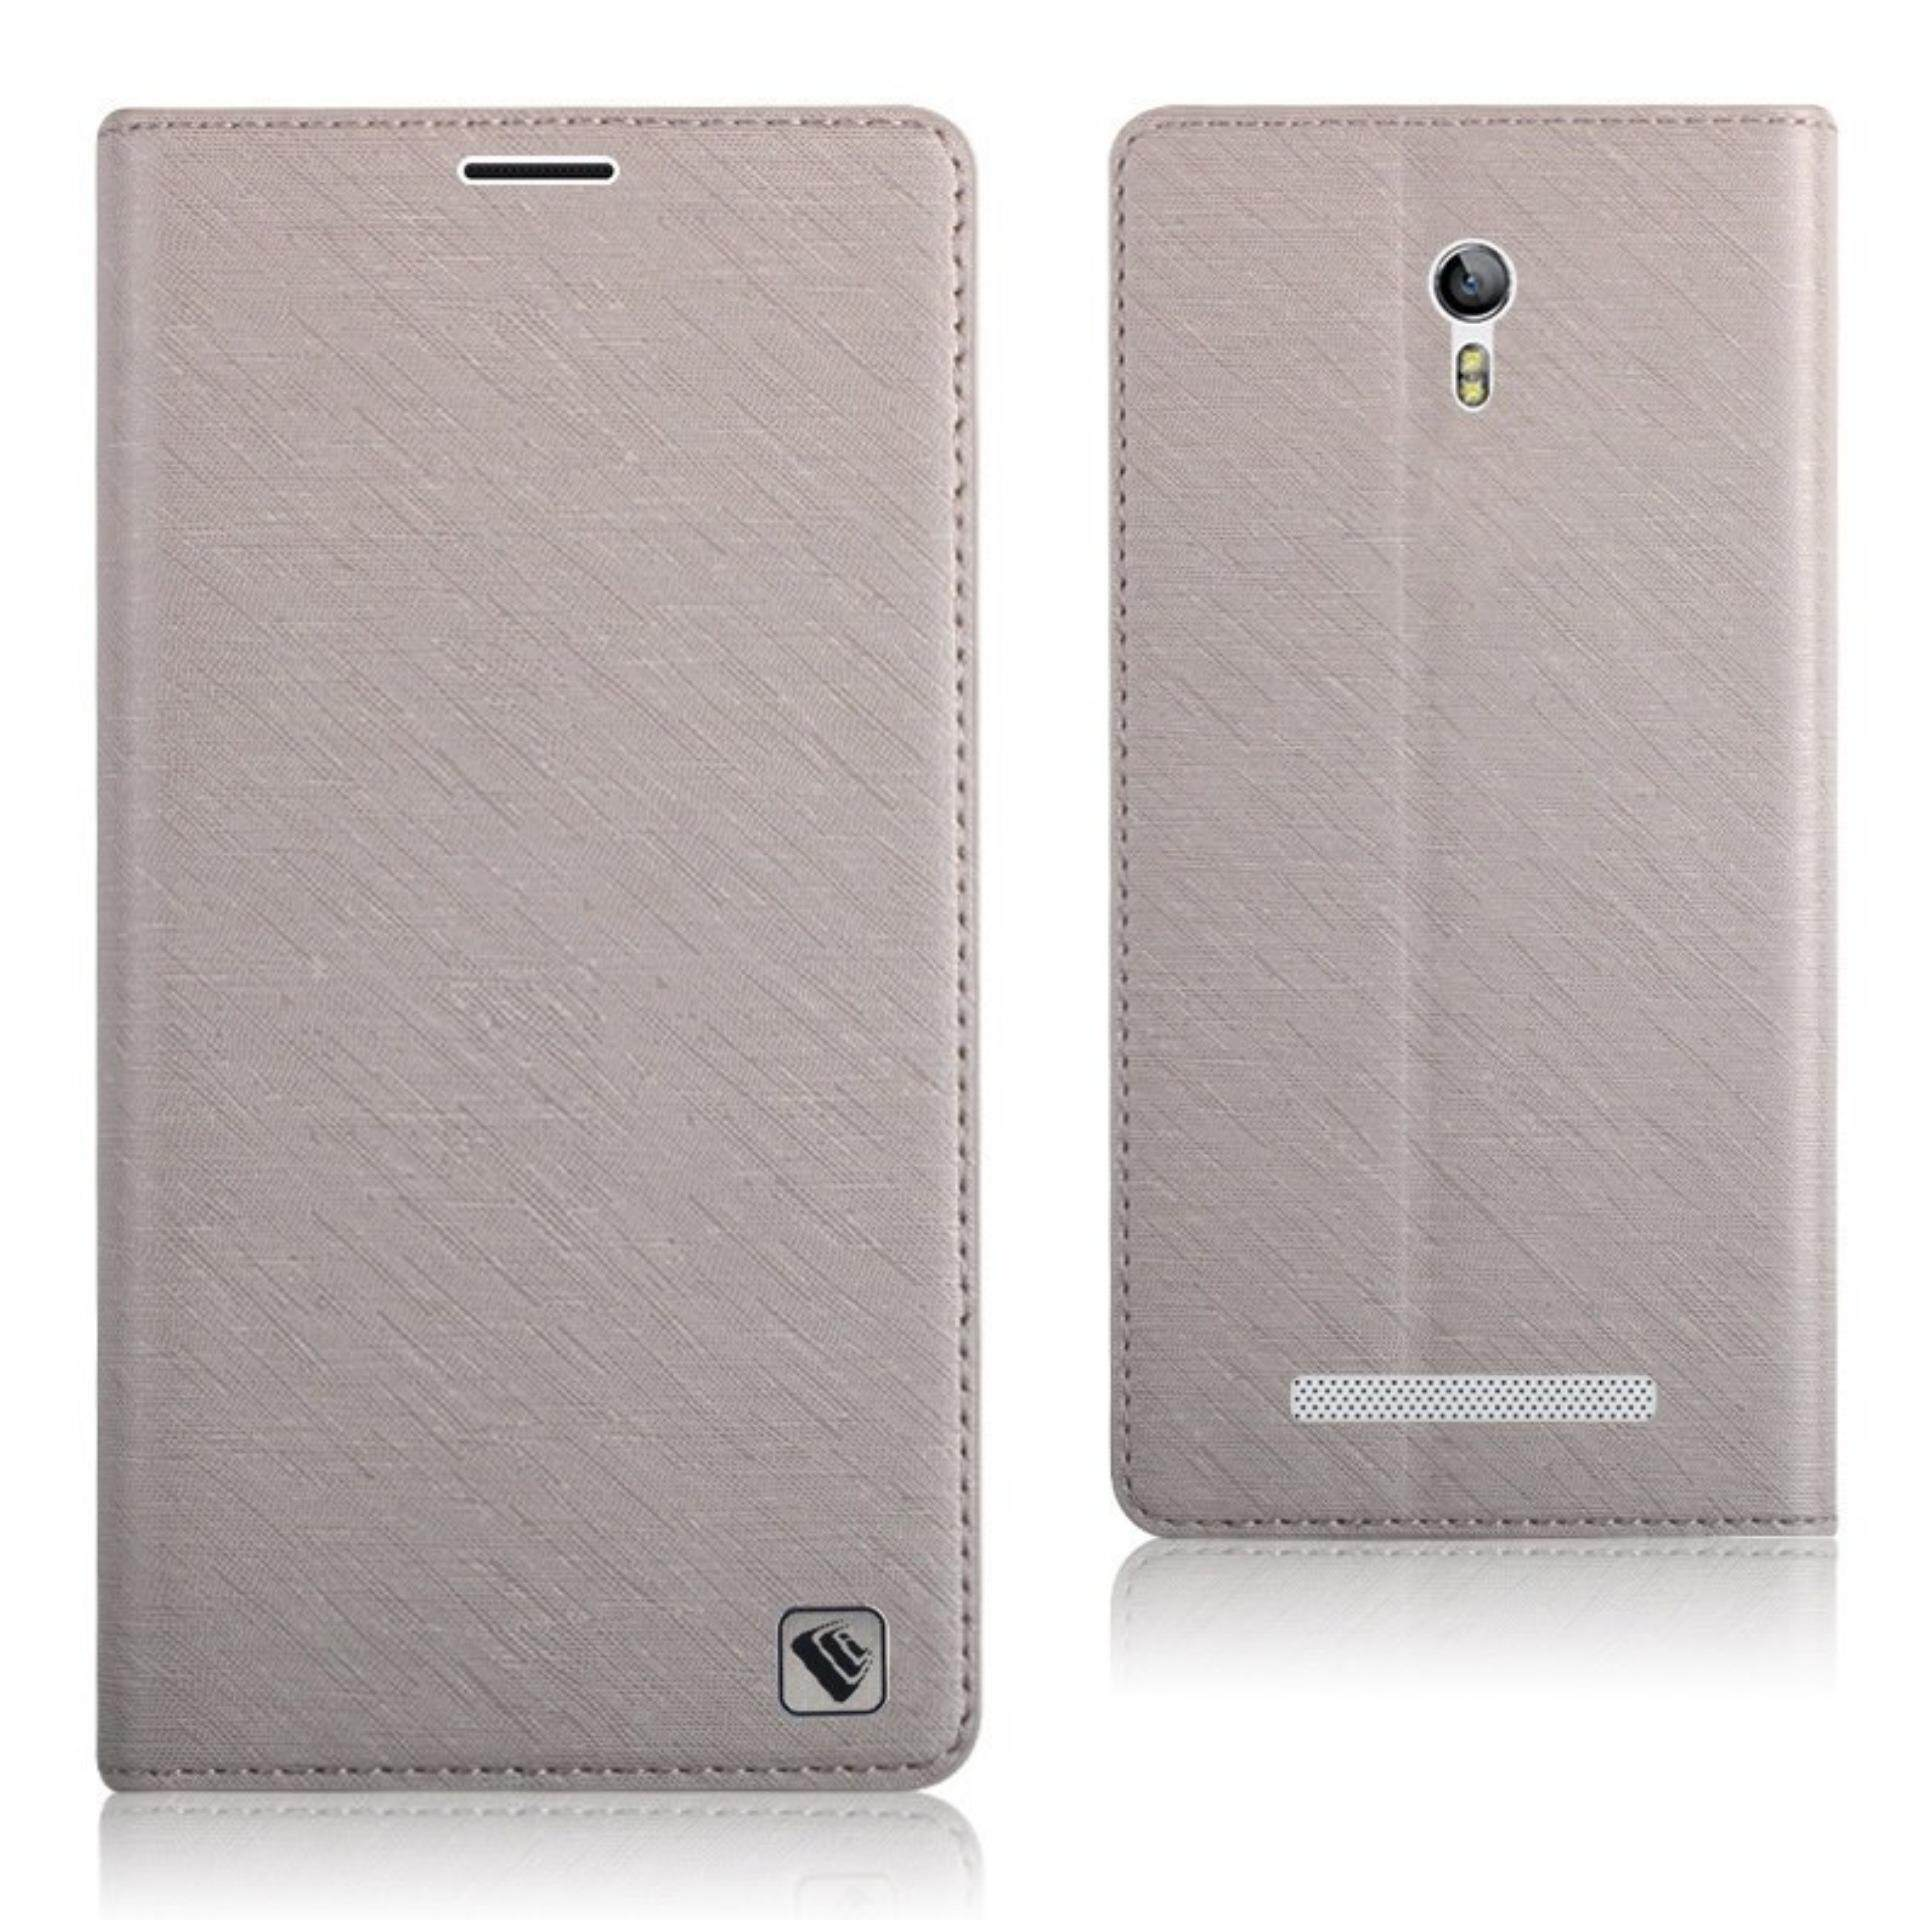 Flip Leather Cover + TPU Soft Case For Oppo Find 7 X9007 5.5 inch Mobile Phone